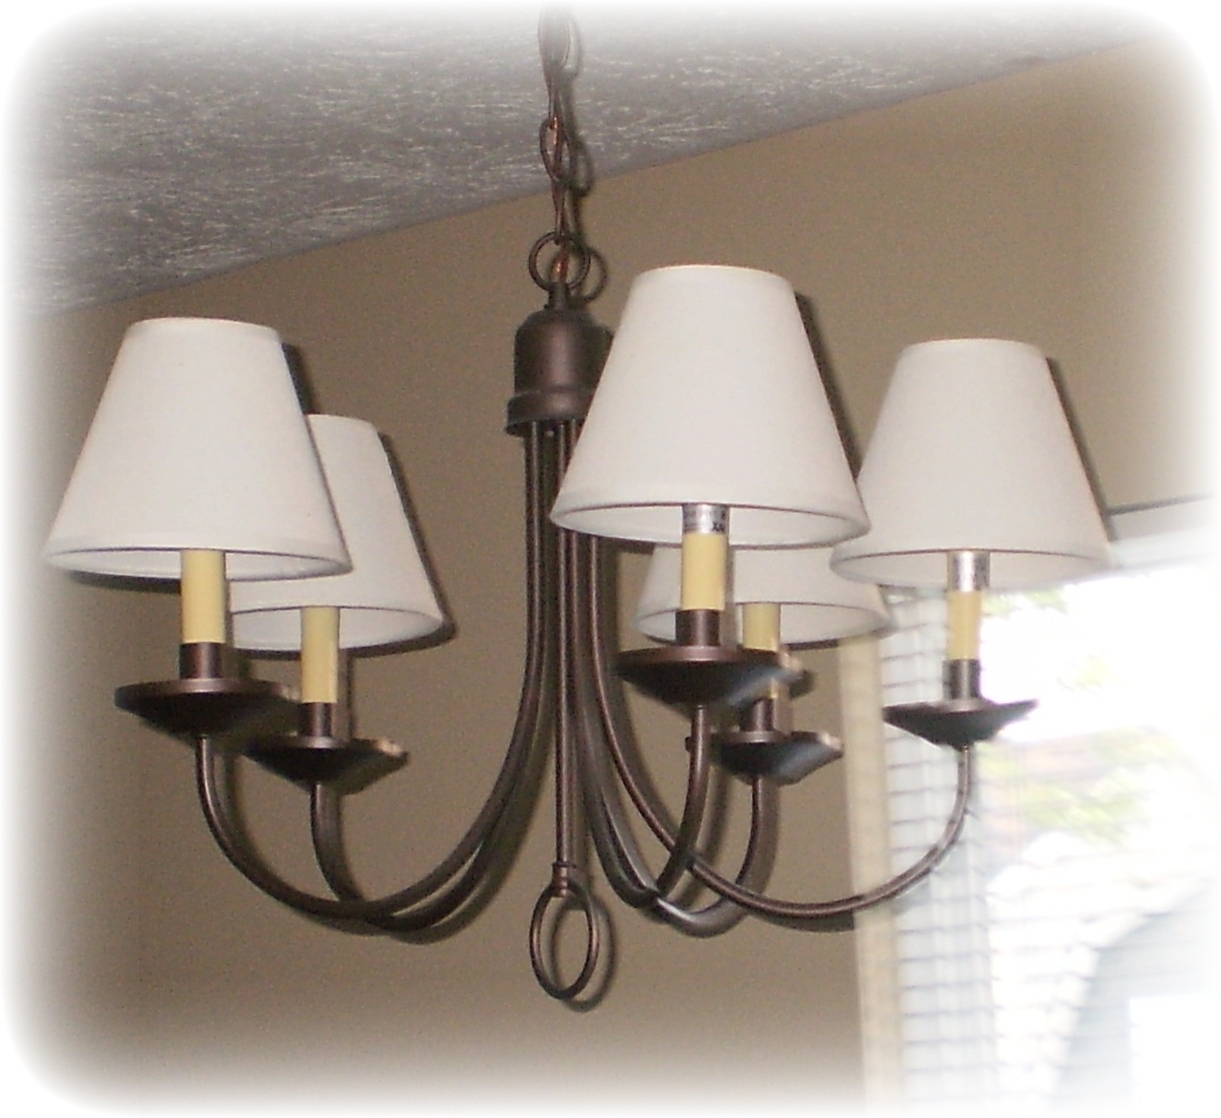 Chandelier Lamp Shades Throughout Preferred Furniture : Mini Chandelier Shades Discount Fabulous 8 Mini (View 9 of 20)